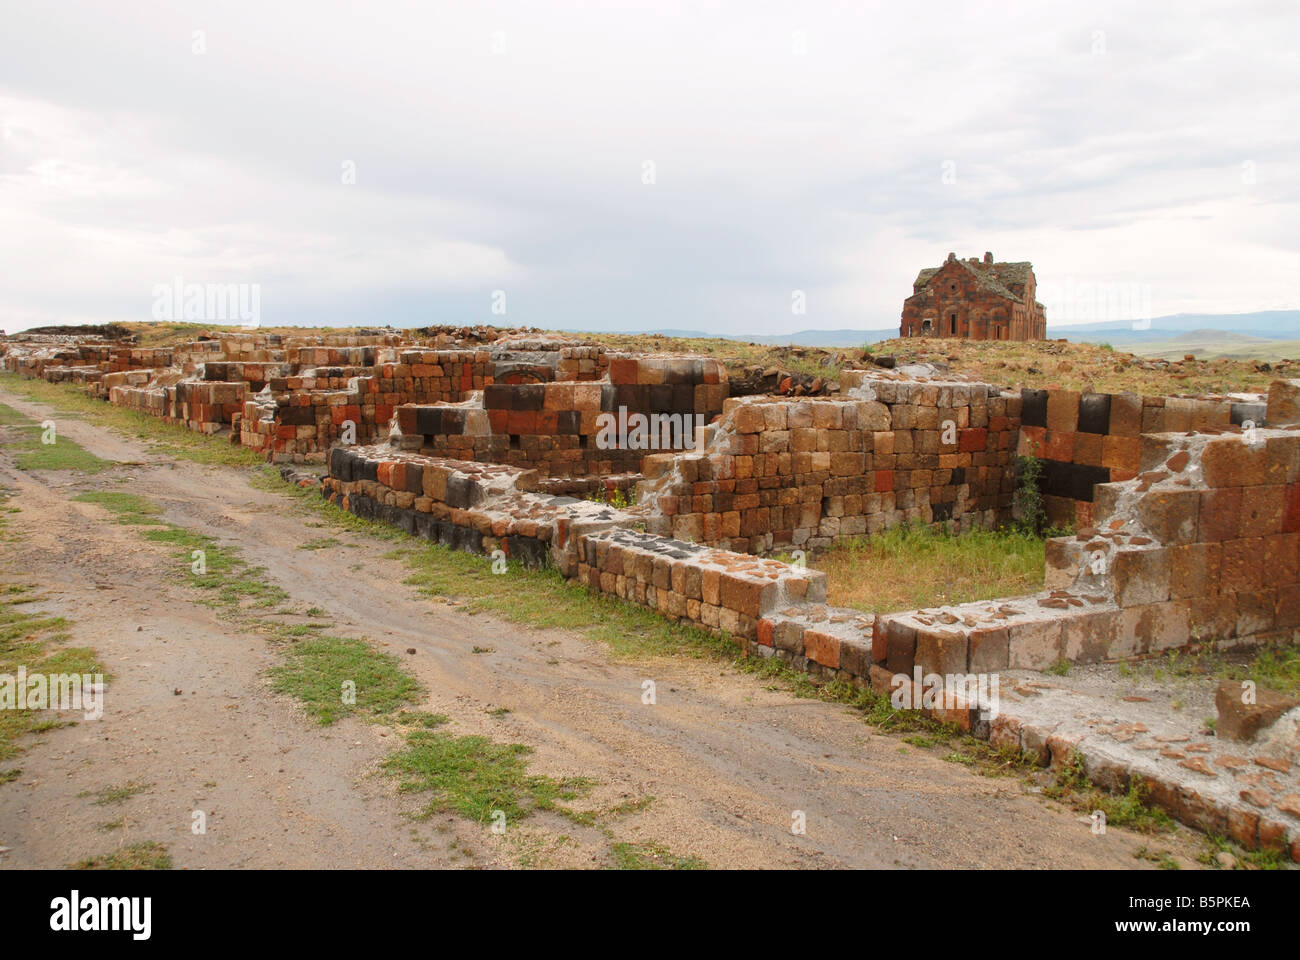 Ani, the old city now abandoned, near the border with Armenia - Stock Image